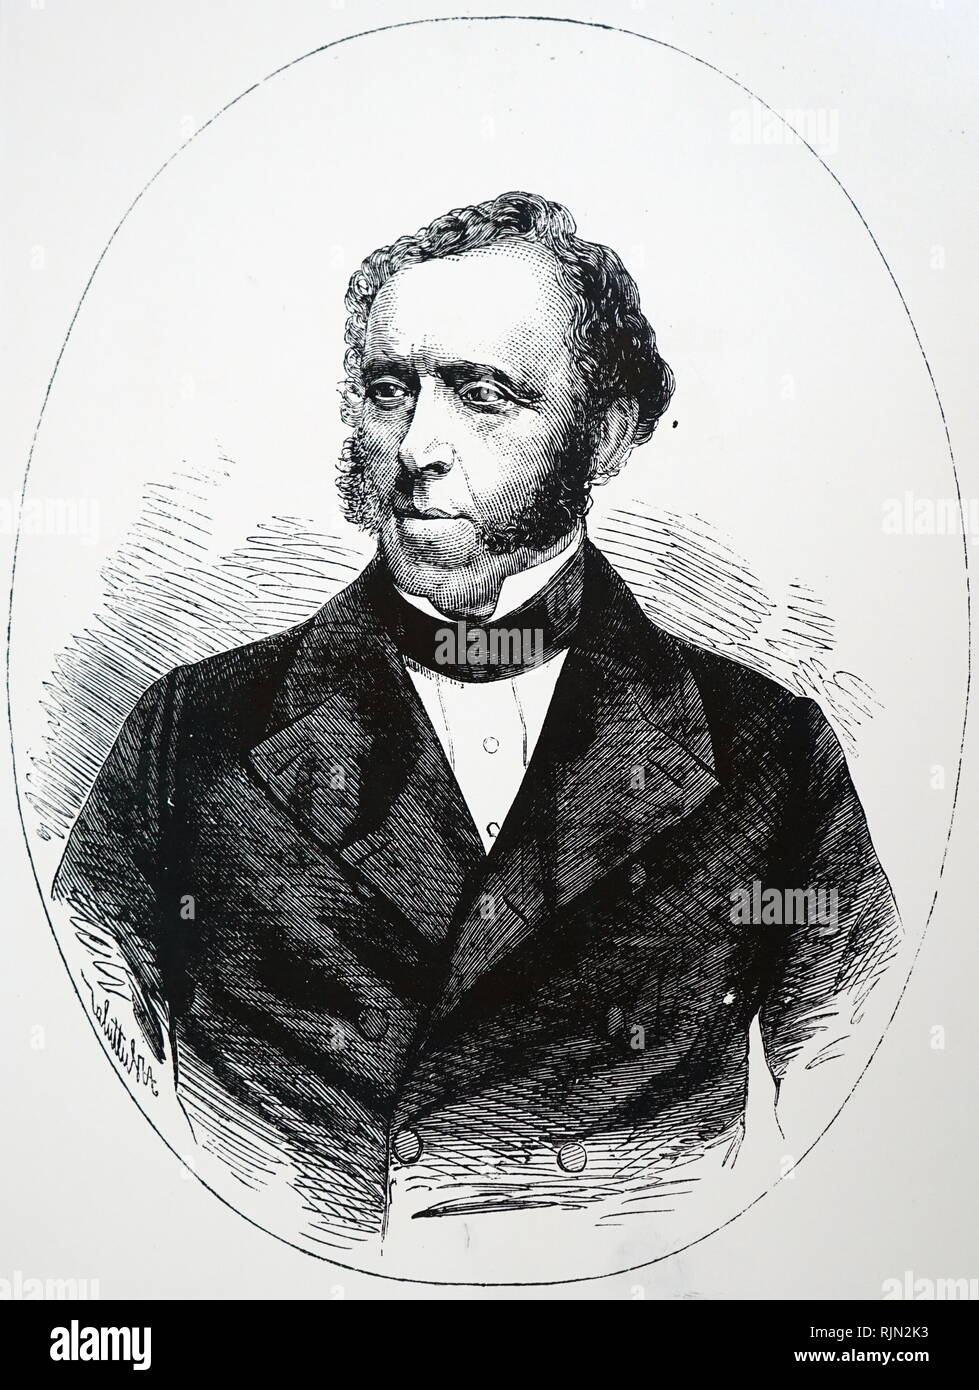 Illustration showing James Braidwood (1800-1861); Scottish fire-fighter who founded of the world's first municipal fire service in Edinburgh in 1824. - Stock Image